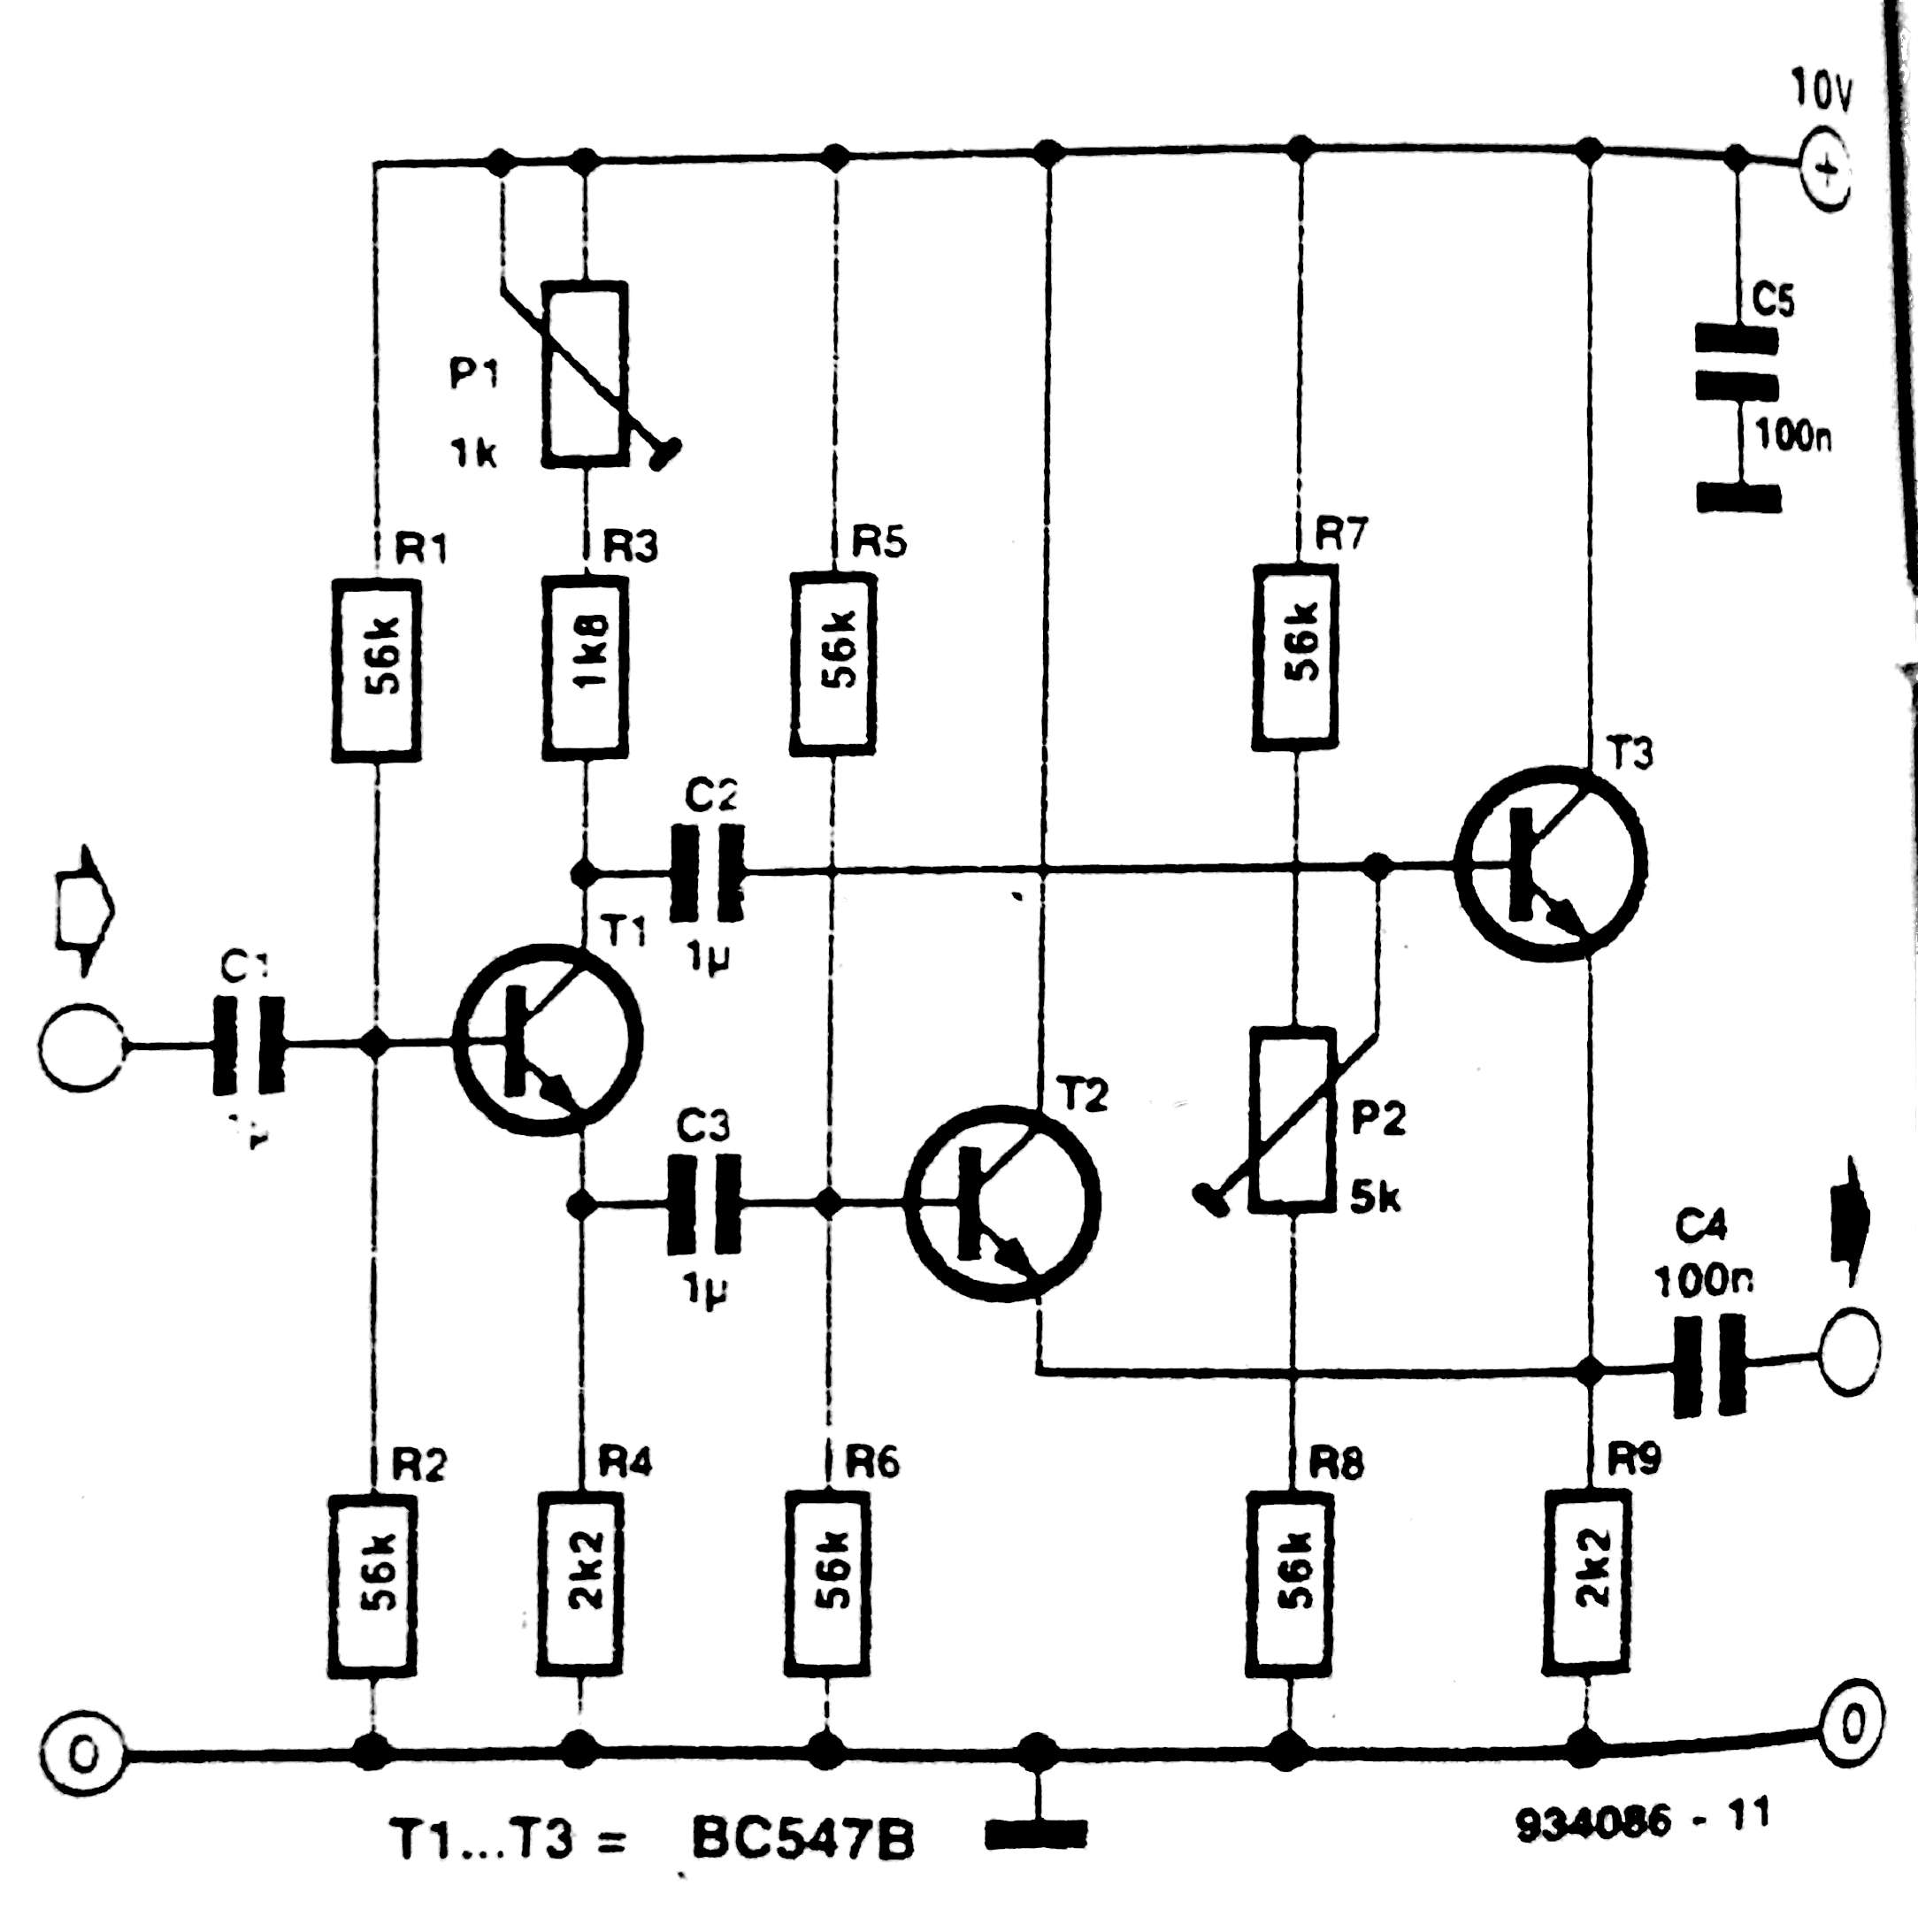 frequency doubler frequency multiplier circuit diagram Anchor Meter Sockets frequency doubler circuit diagram